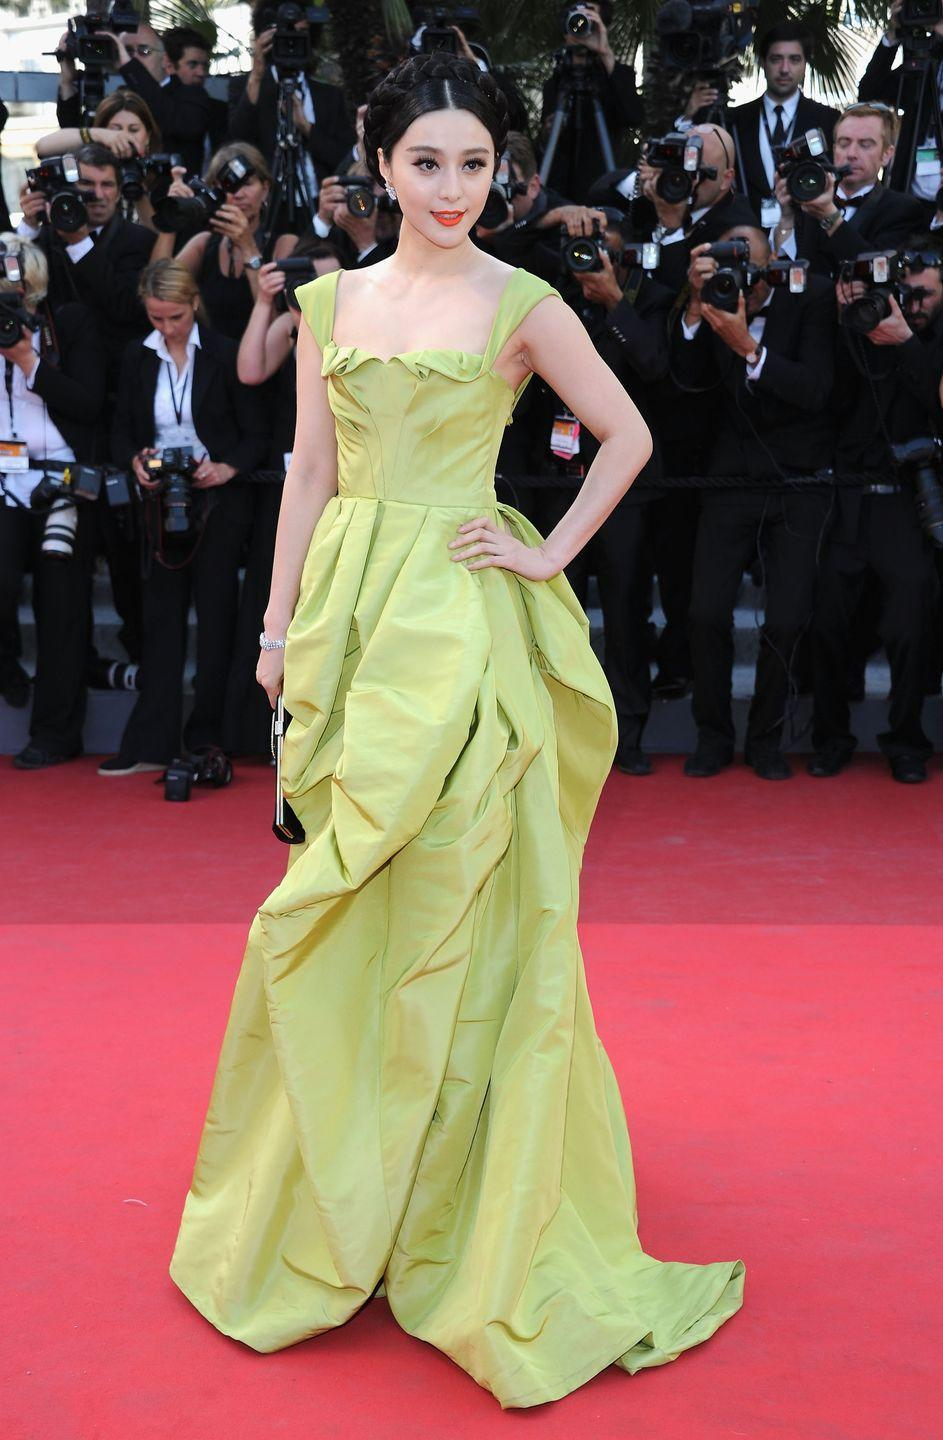 <p>Chinese actress Fan Bingbing shows off a ball gown with a full skirt, similar to what Tiana wore in <em>The </em><em>Princess and the Frog</em>. Fan's gown is by Oscar de la Renta and she wore it to the 2011 Cannes Film Festival. </p>